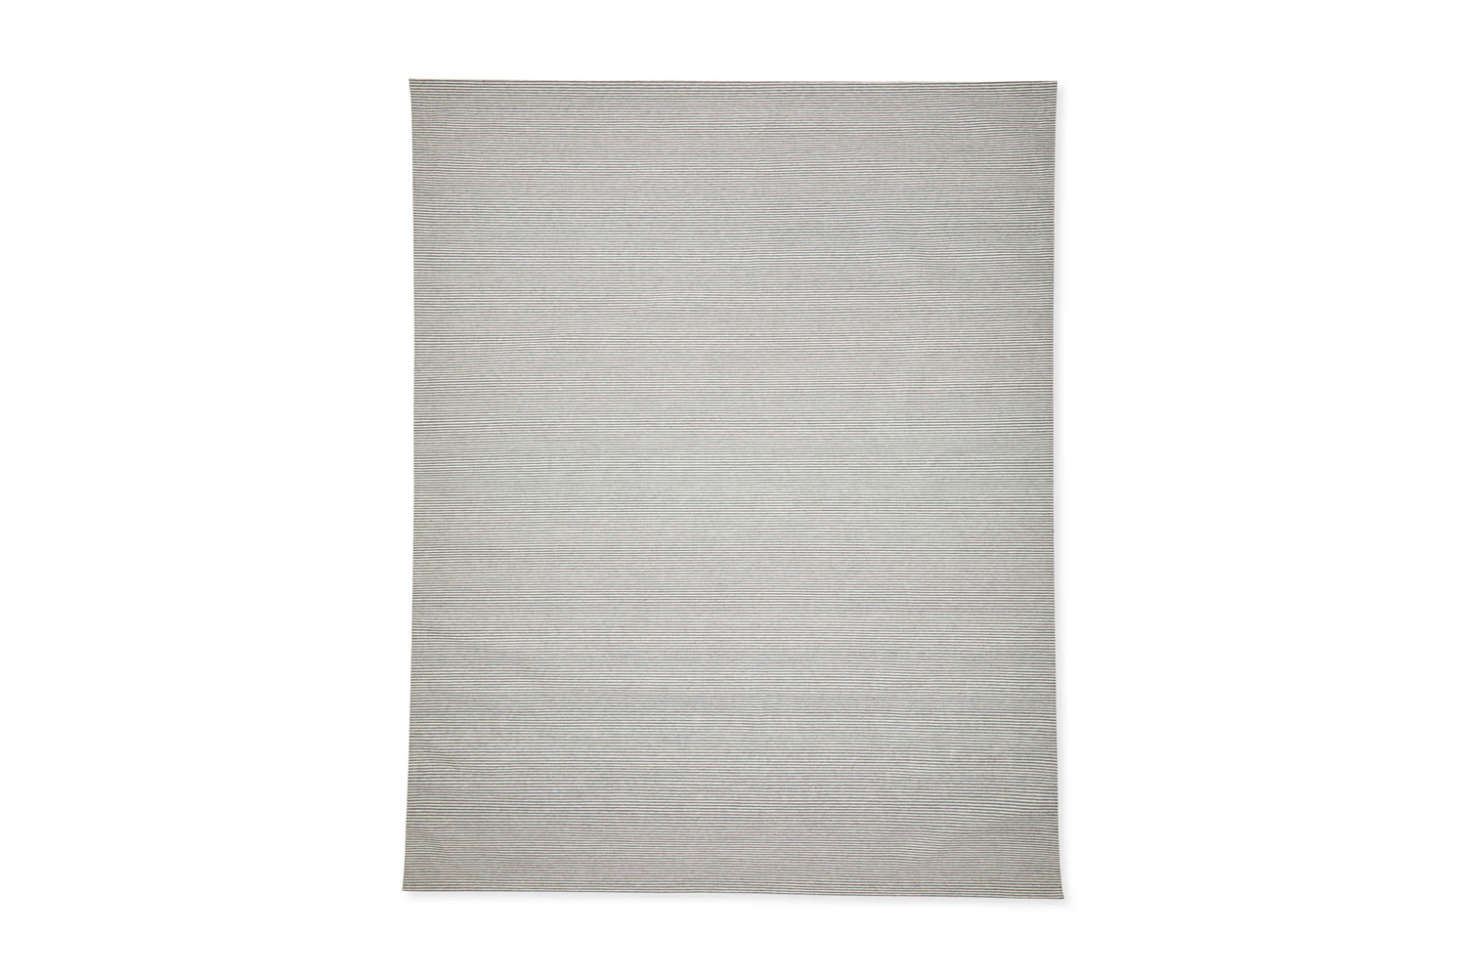 The Nantucket Rug in Nickel (shown) or Blue, is a simple striped flatweave rug made of wool and nylon; $798 for the 9&#8